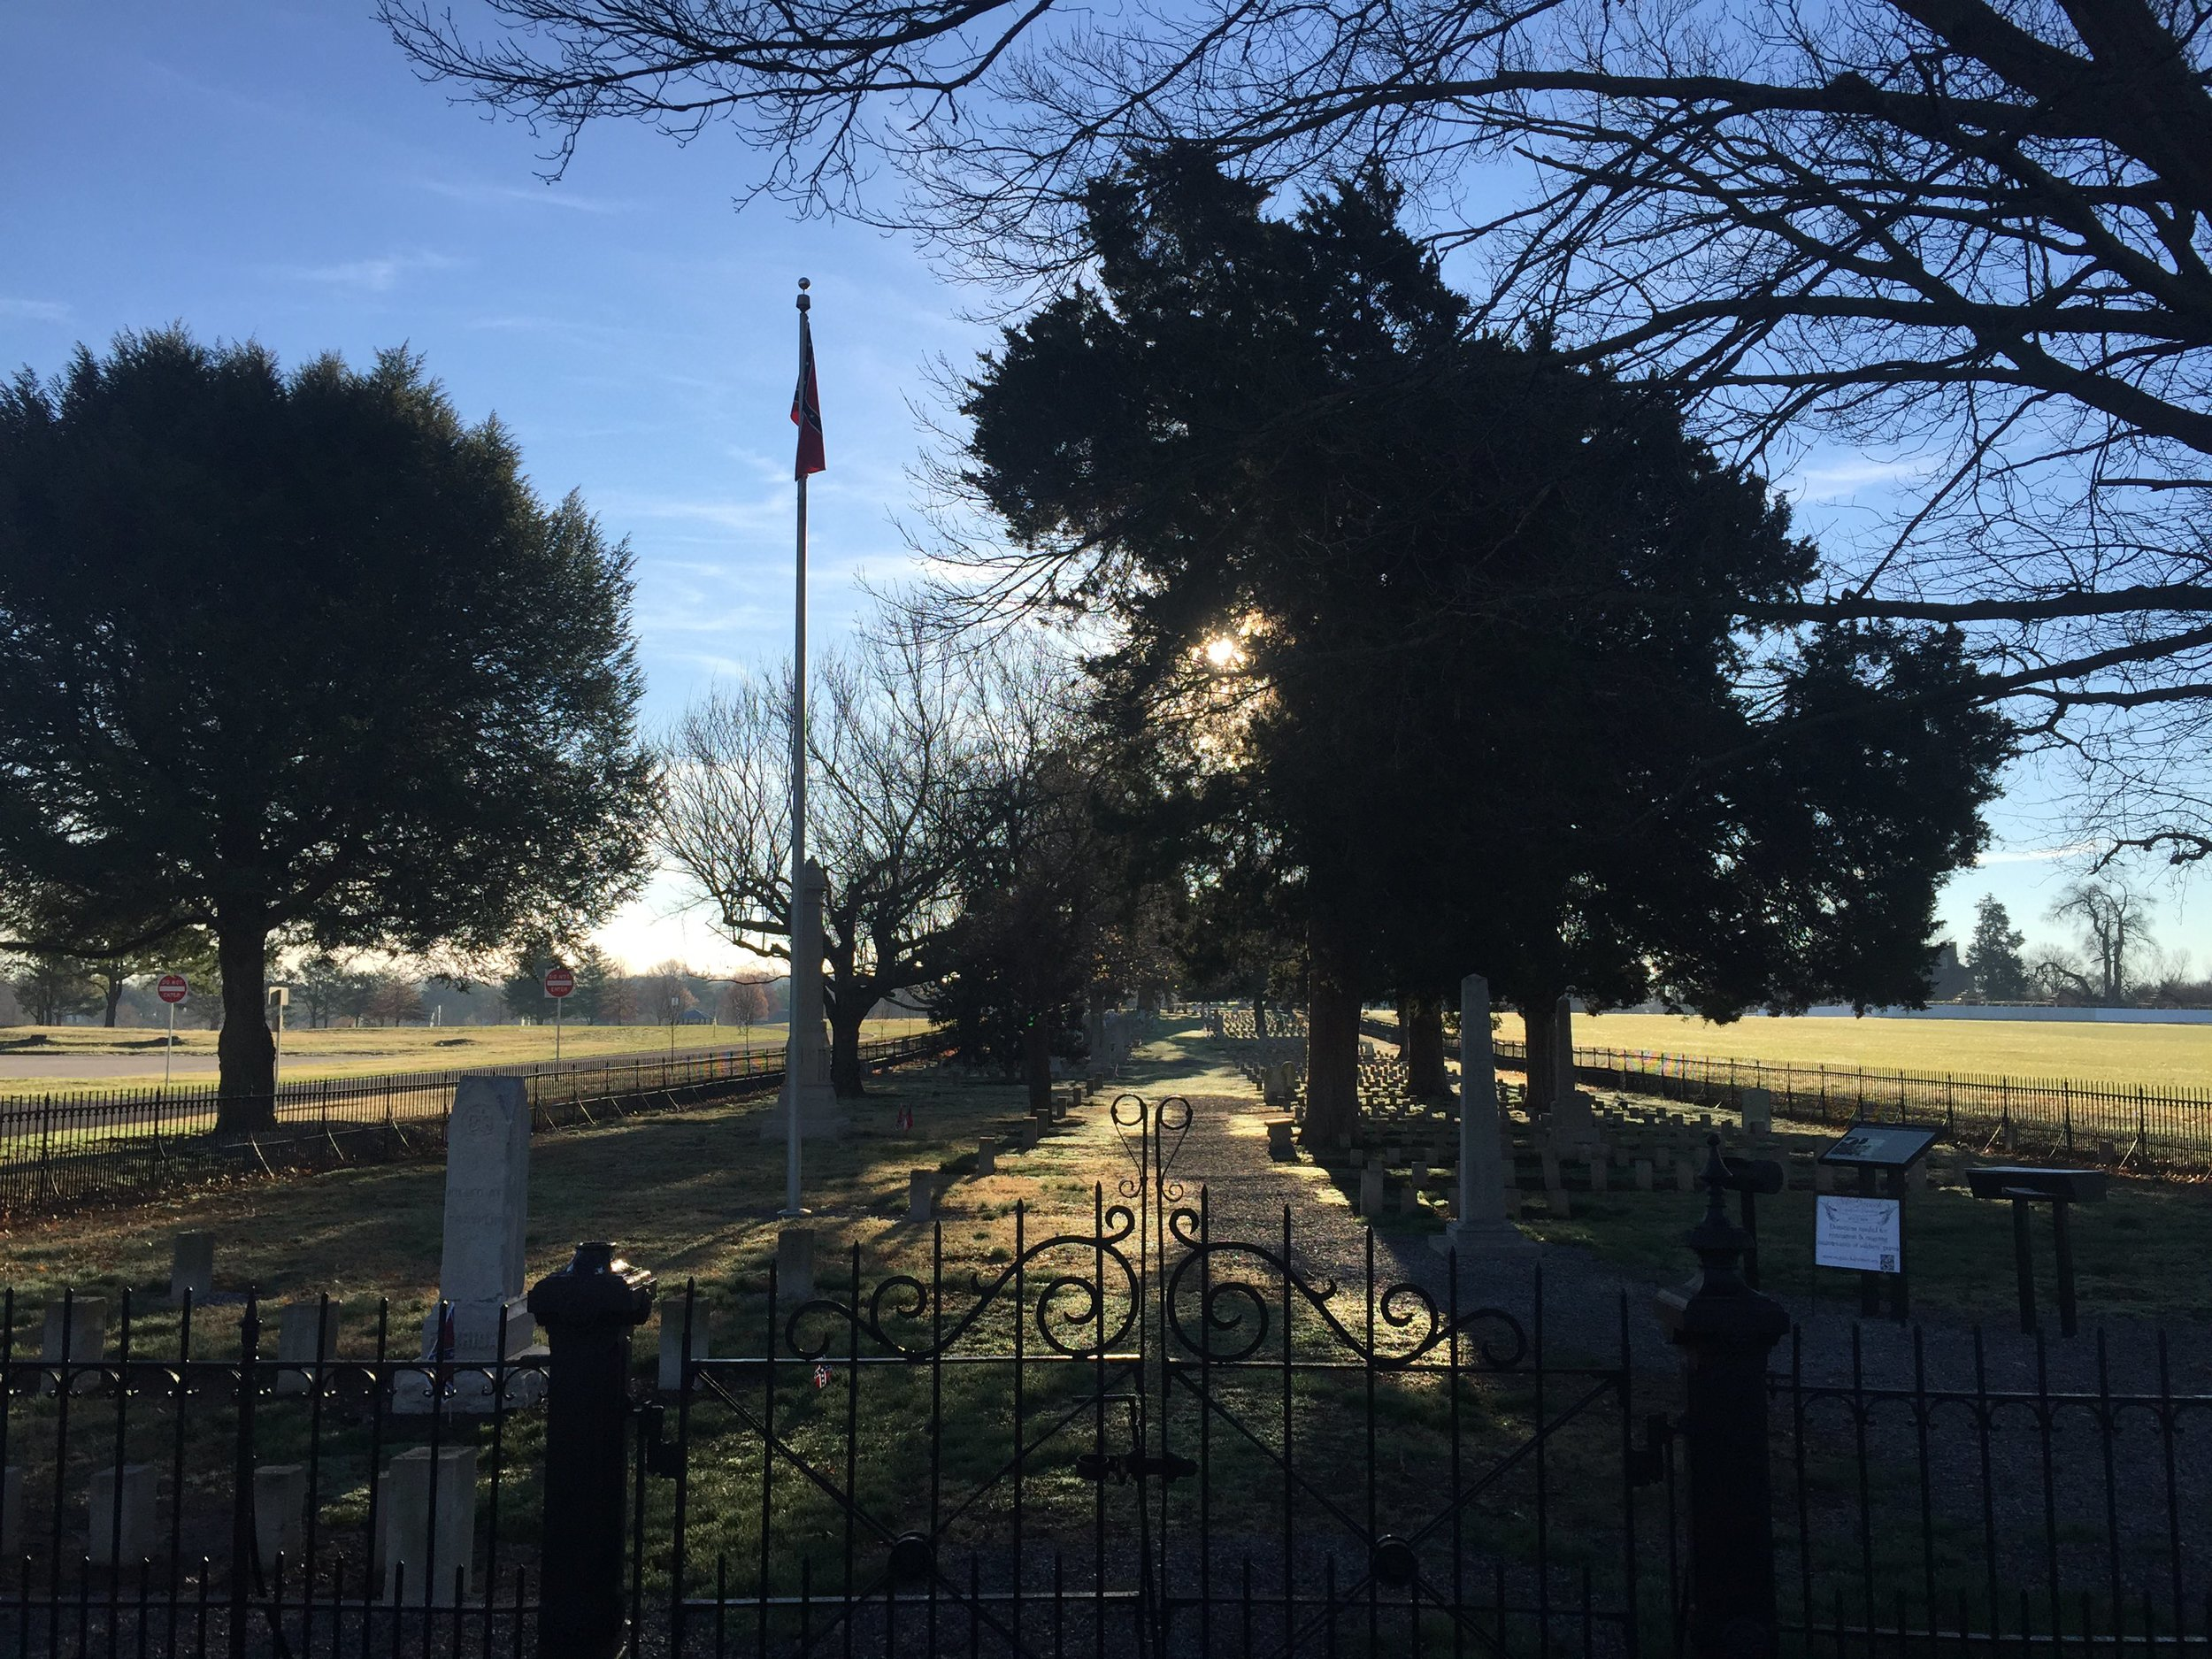 McGavock ConfederateCemetery. Photo by Annabelle RoseStelter April 2015.